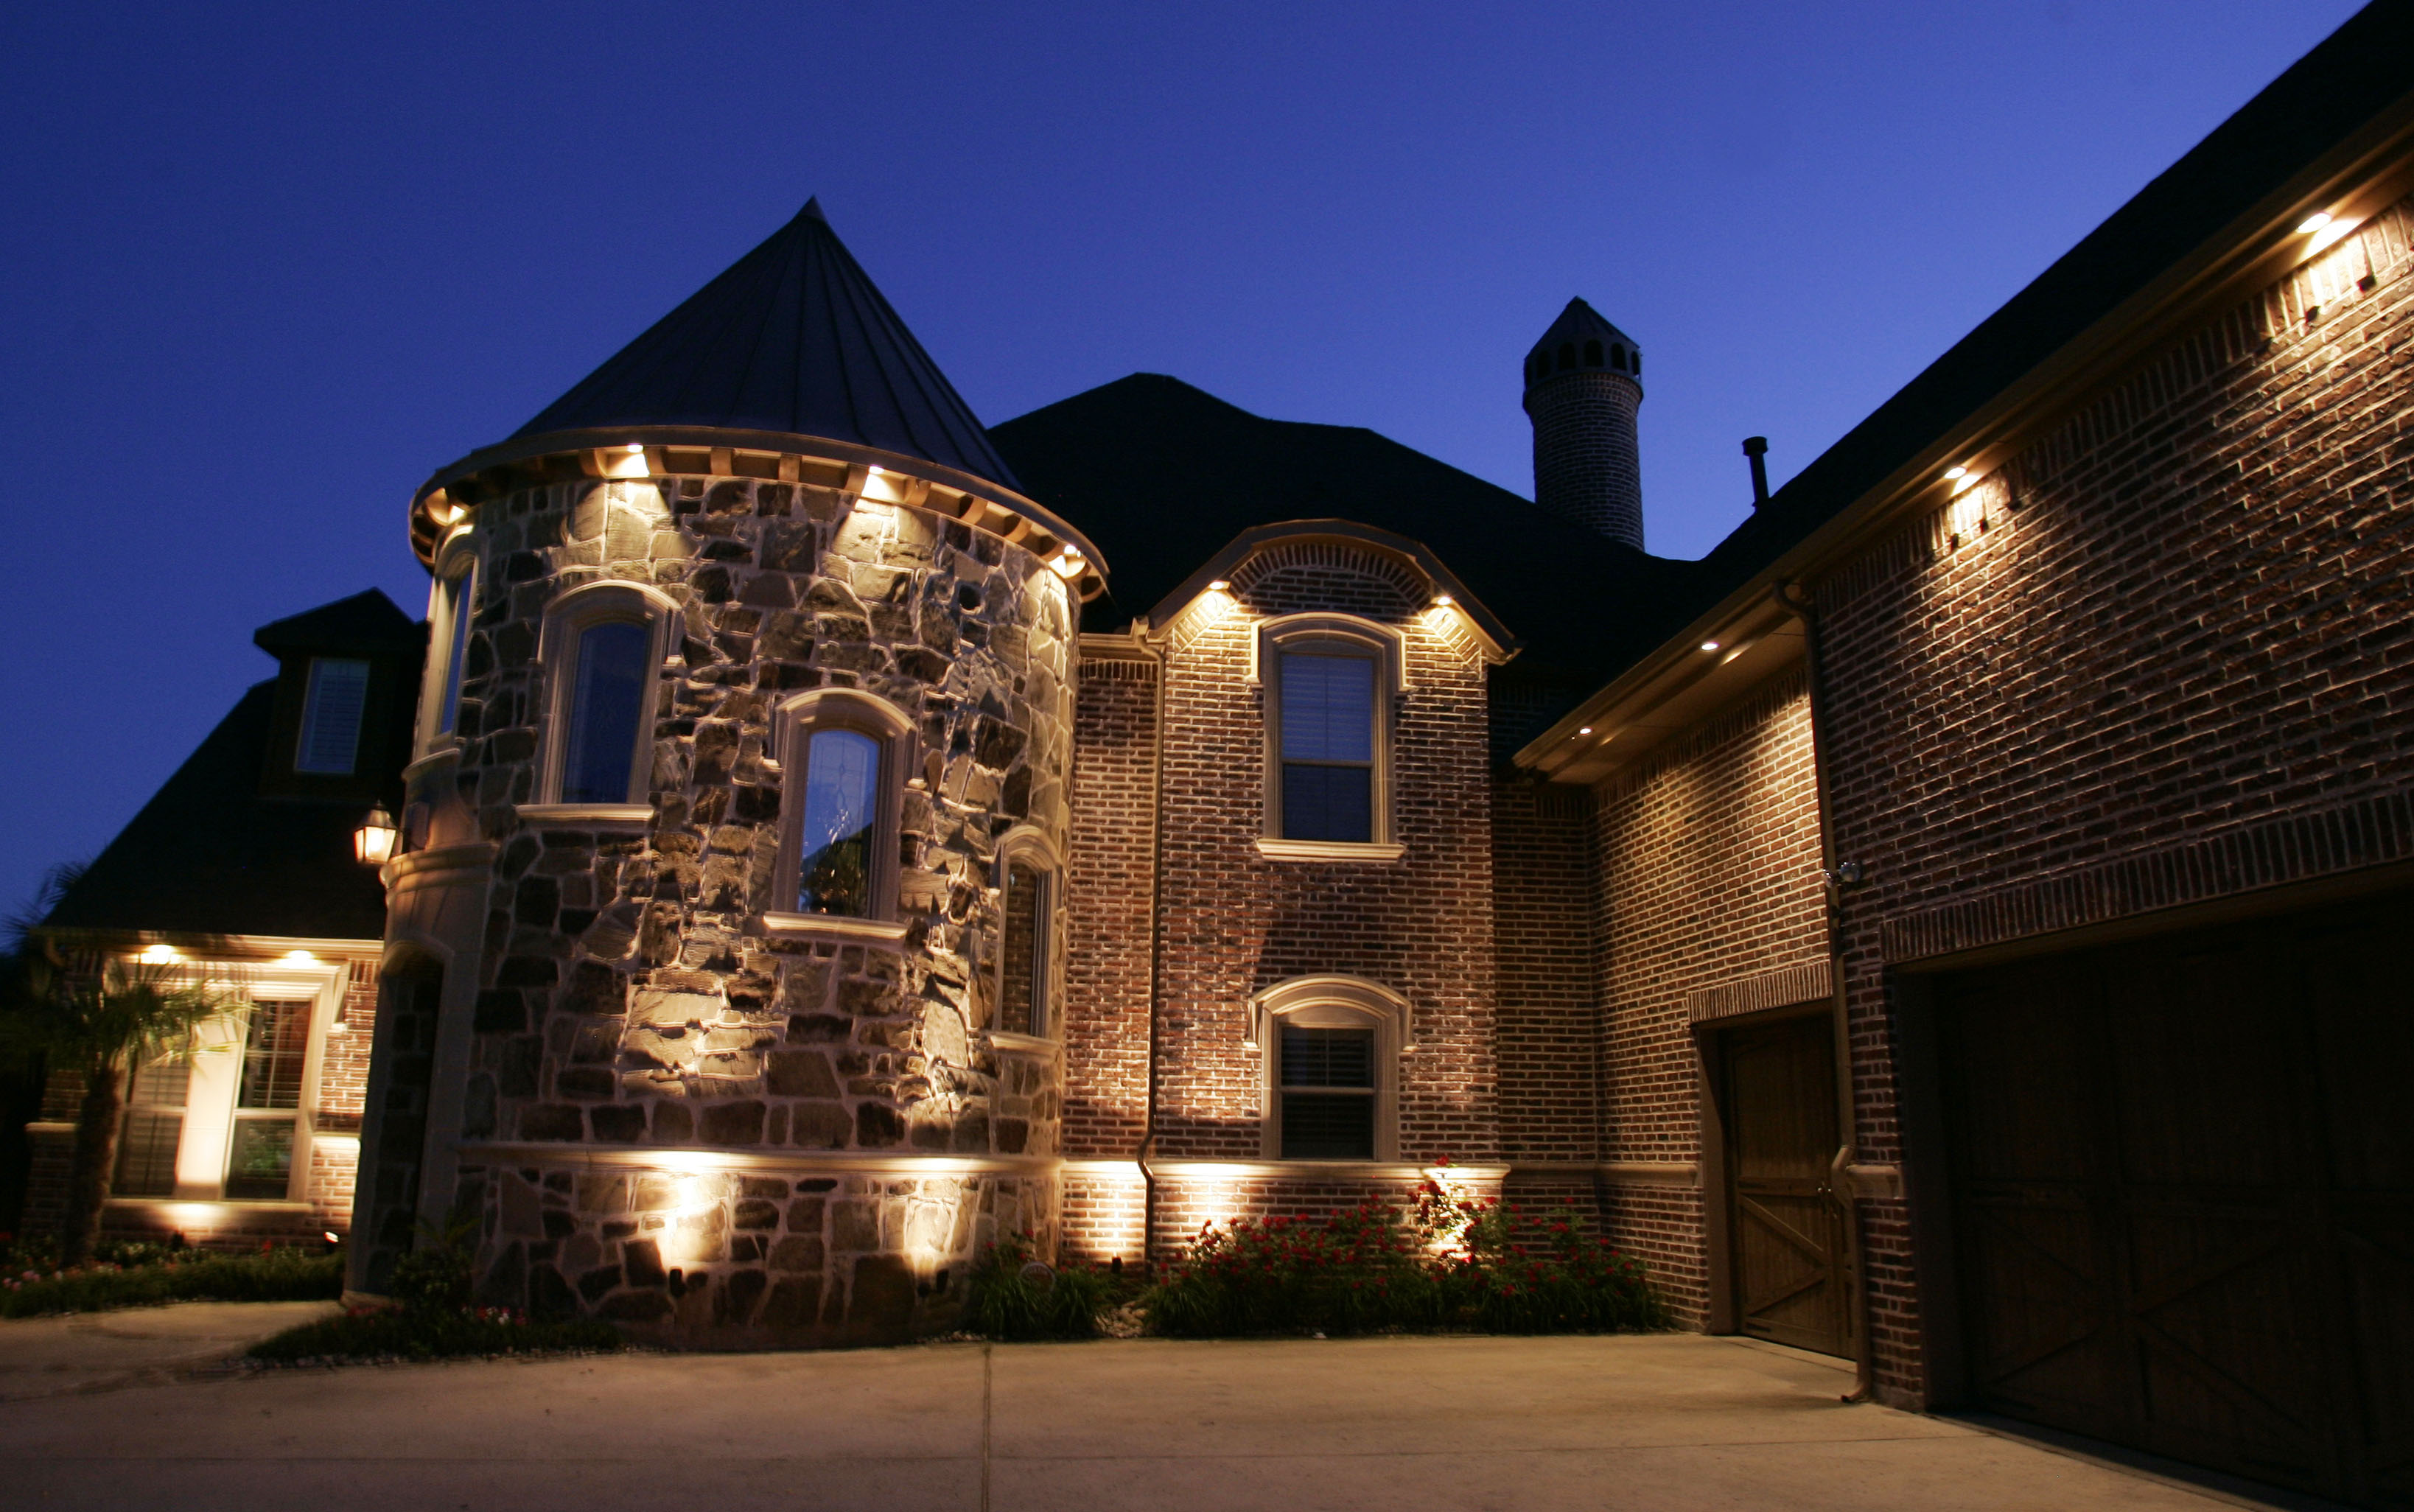 & McKinney Outdoor Lighting | Dallas Landscape Lighting